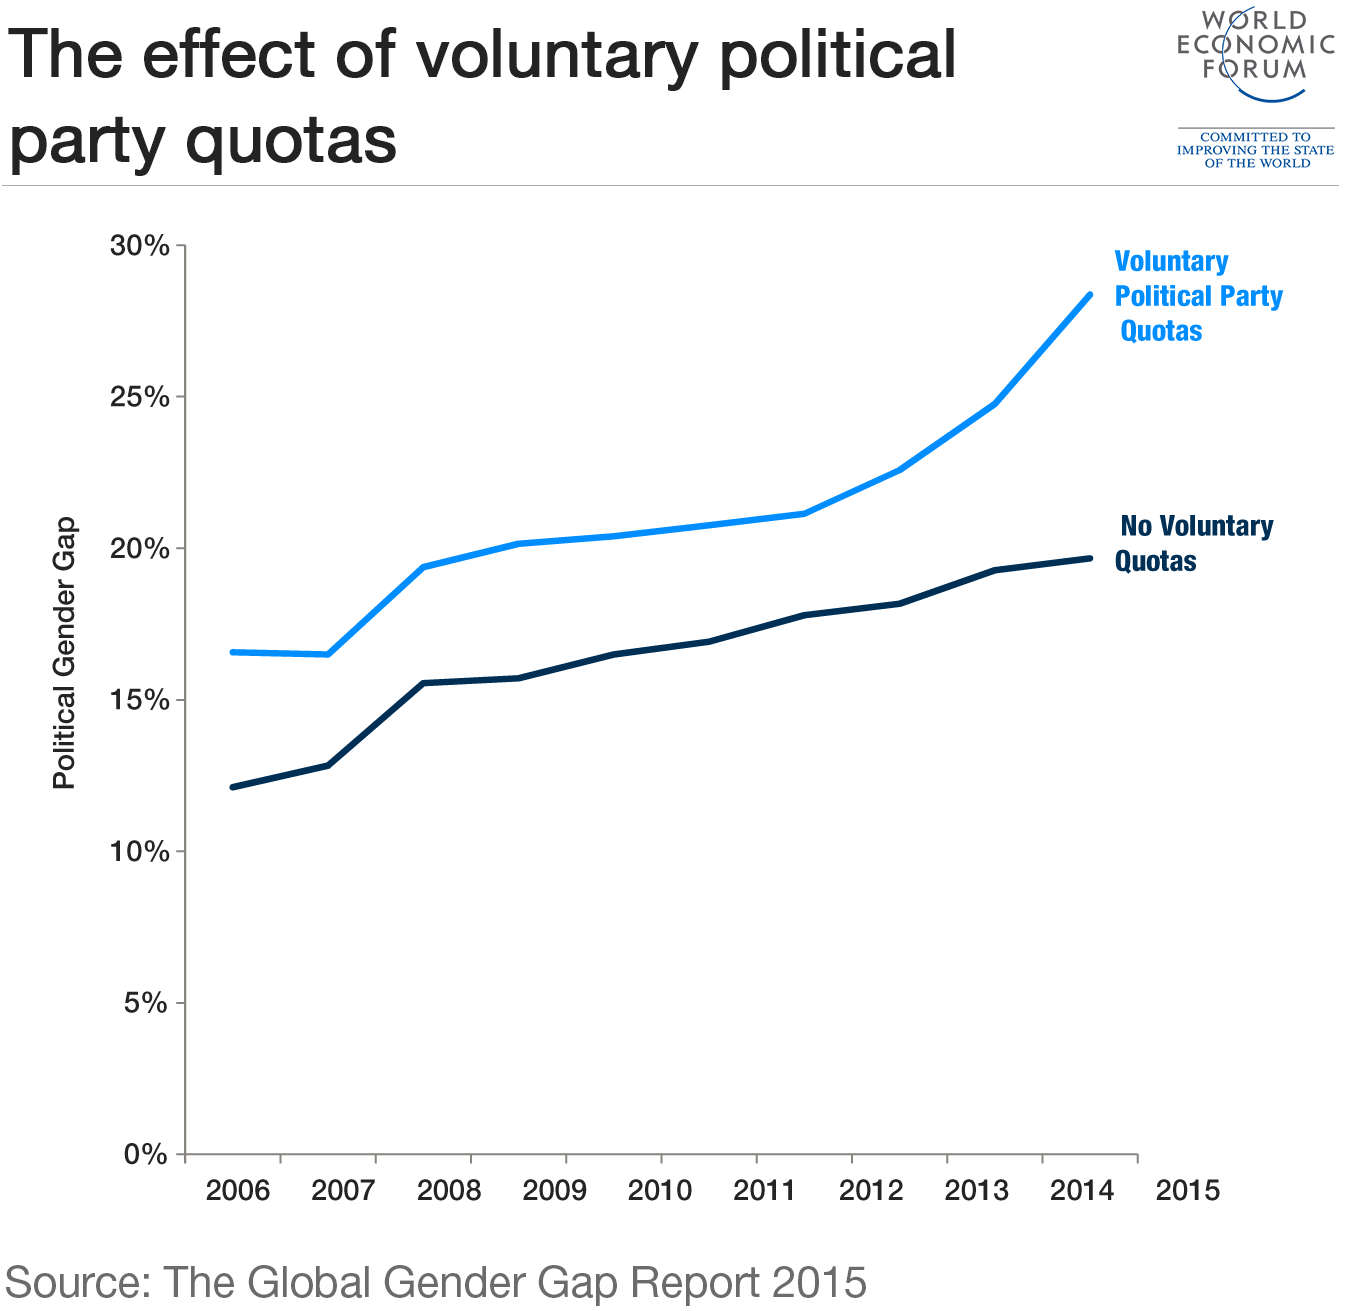 6_the-effect-of-partiy-political-voluntary-quotas-gender-gap-equality-2